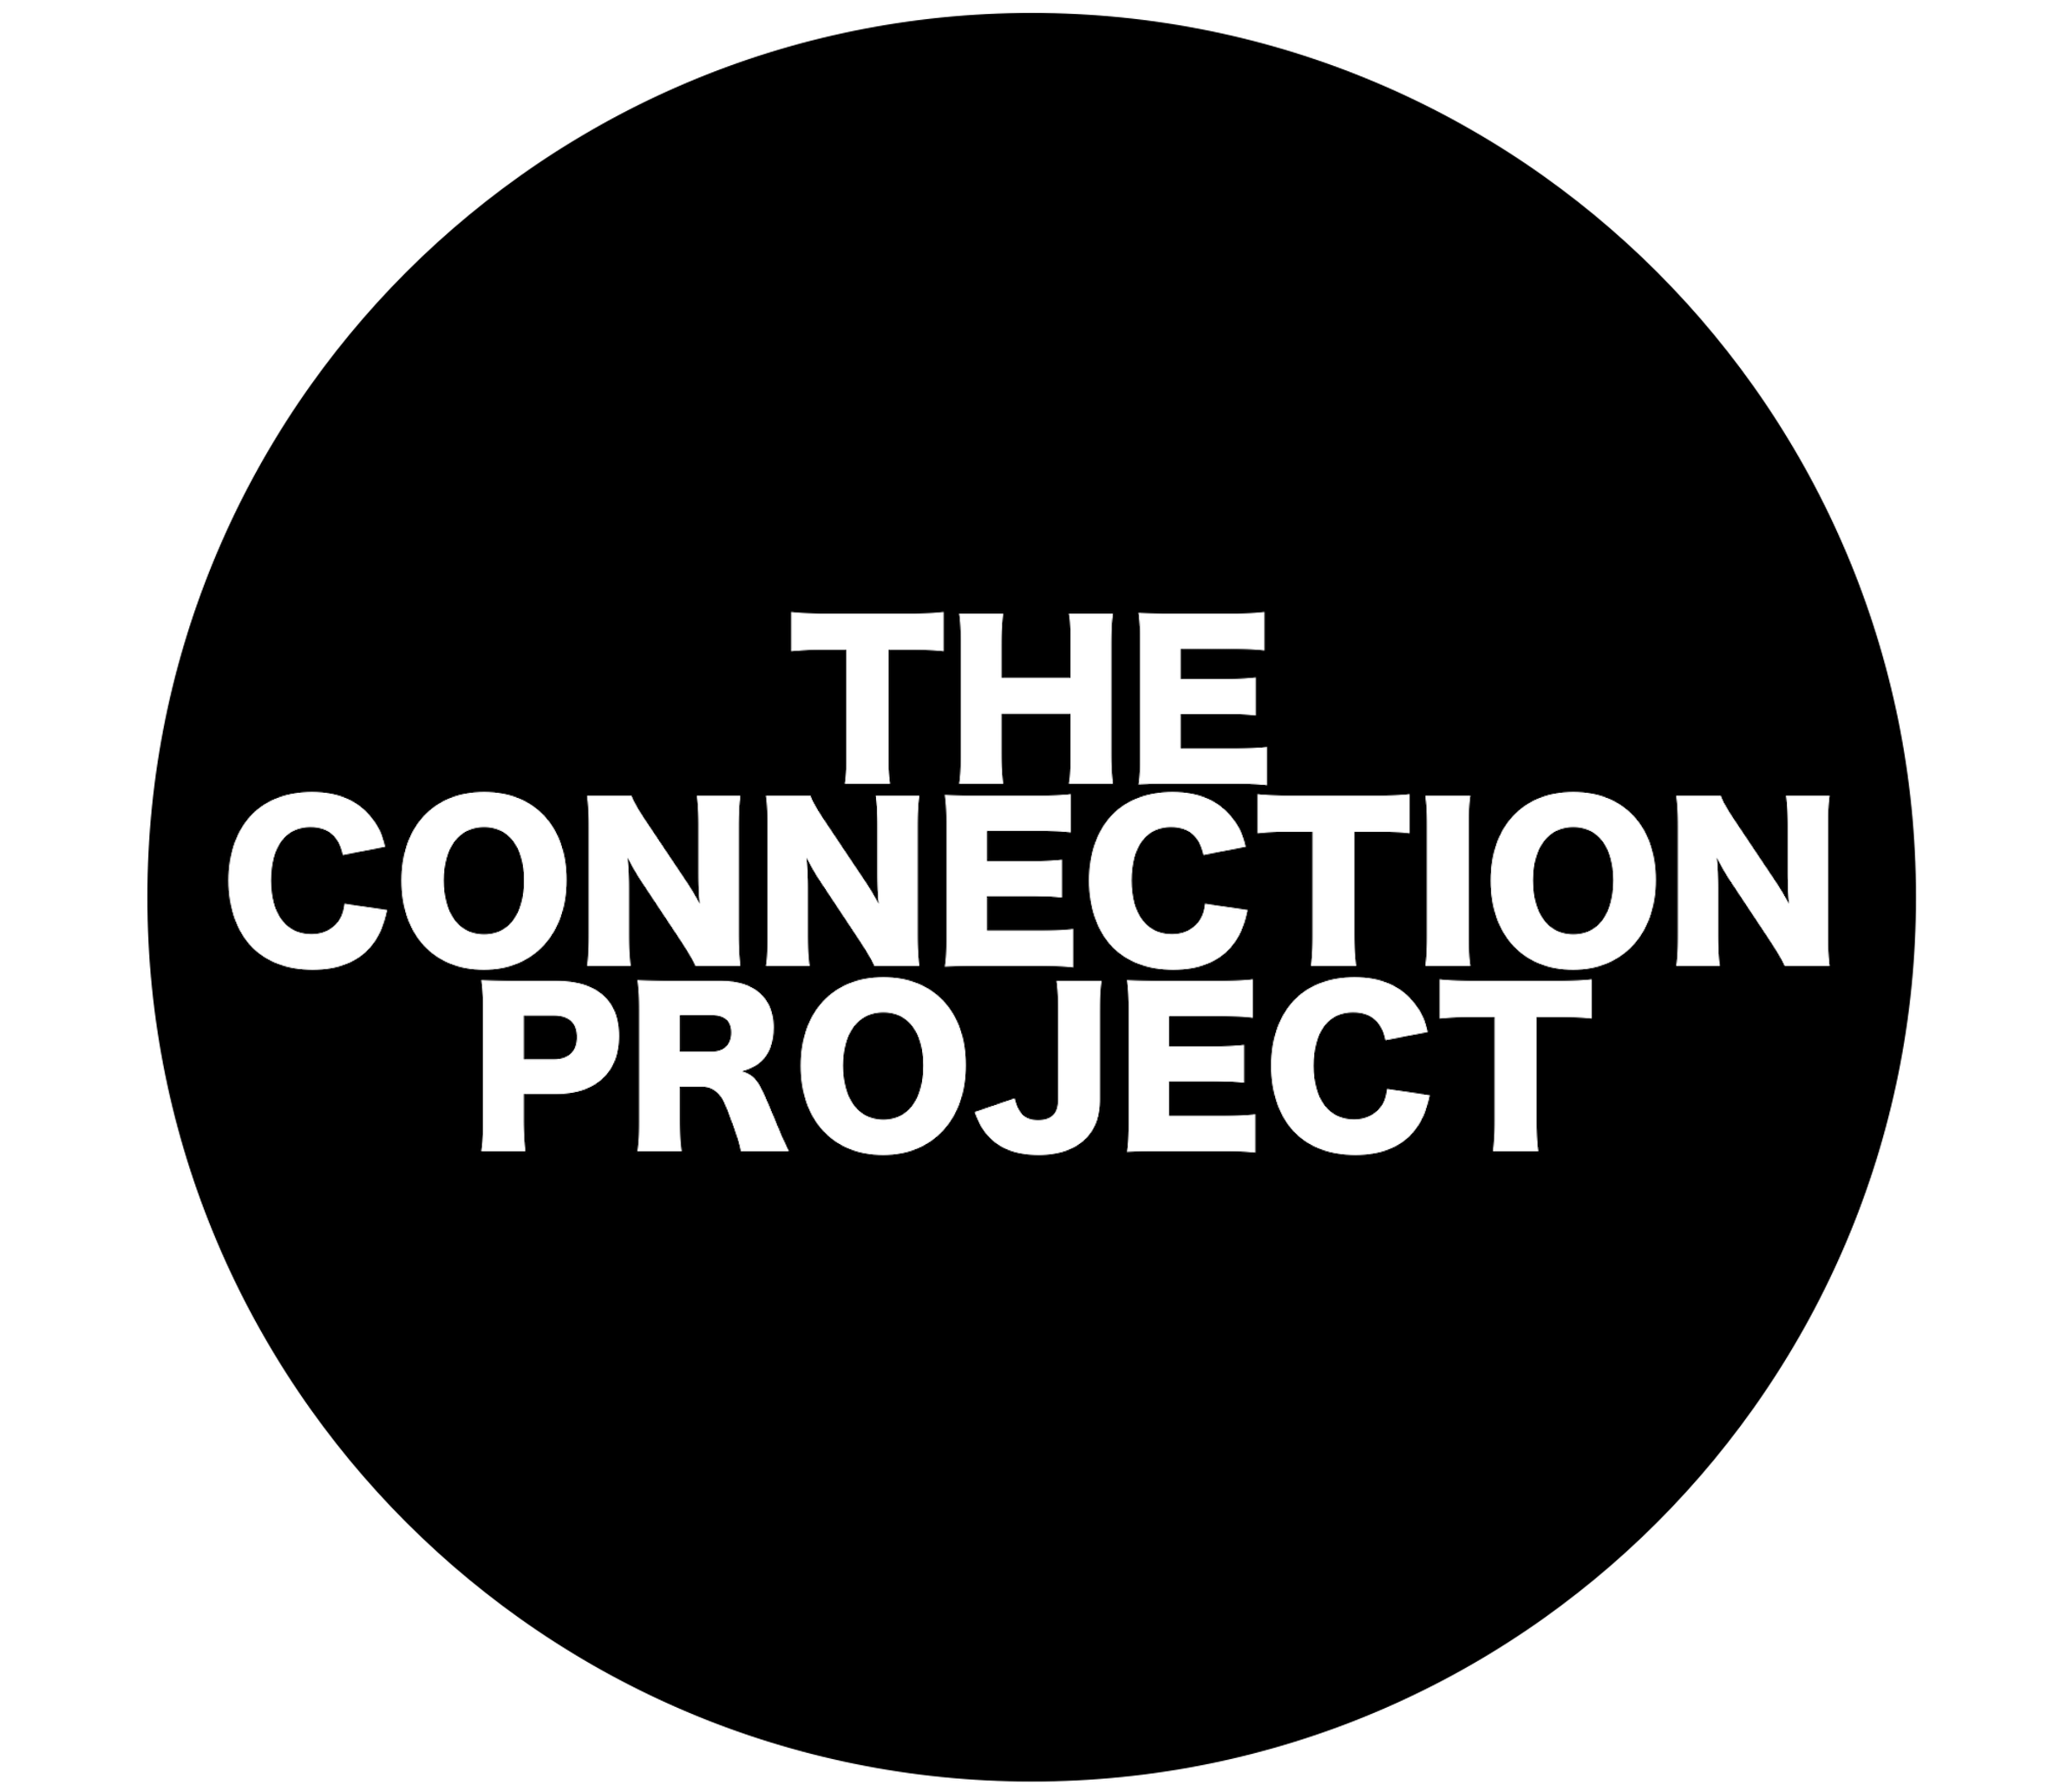 The Connection Project